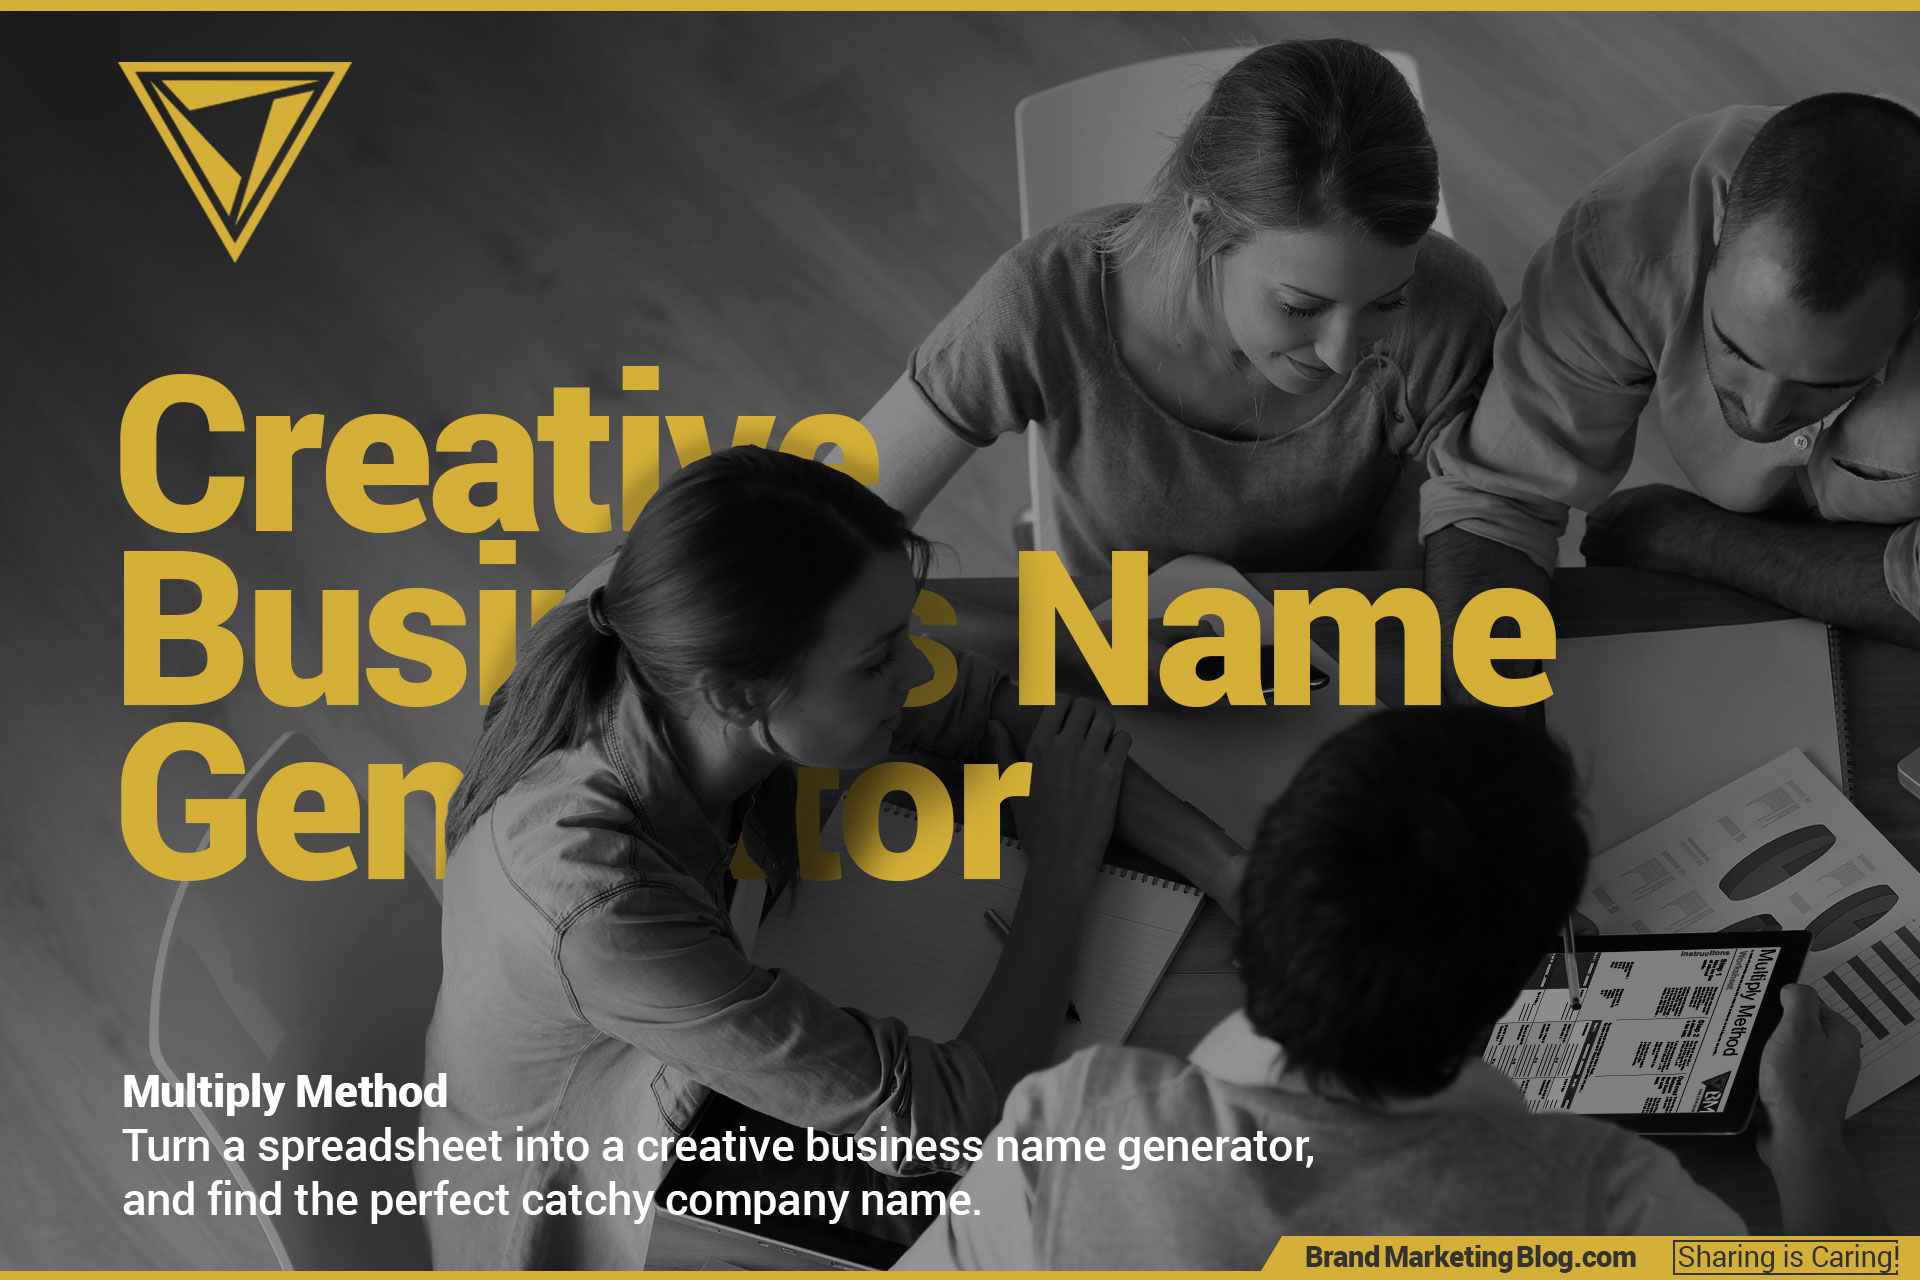 Creative Business Name Generator. A group of marketing professionals brainstorming business names.